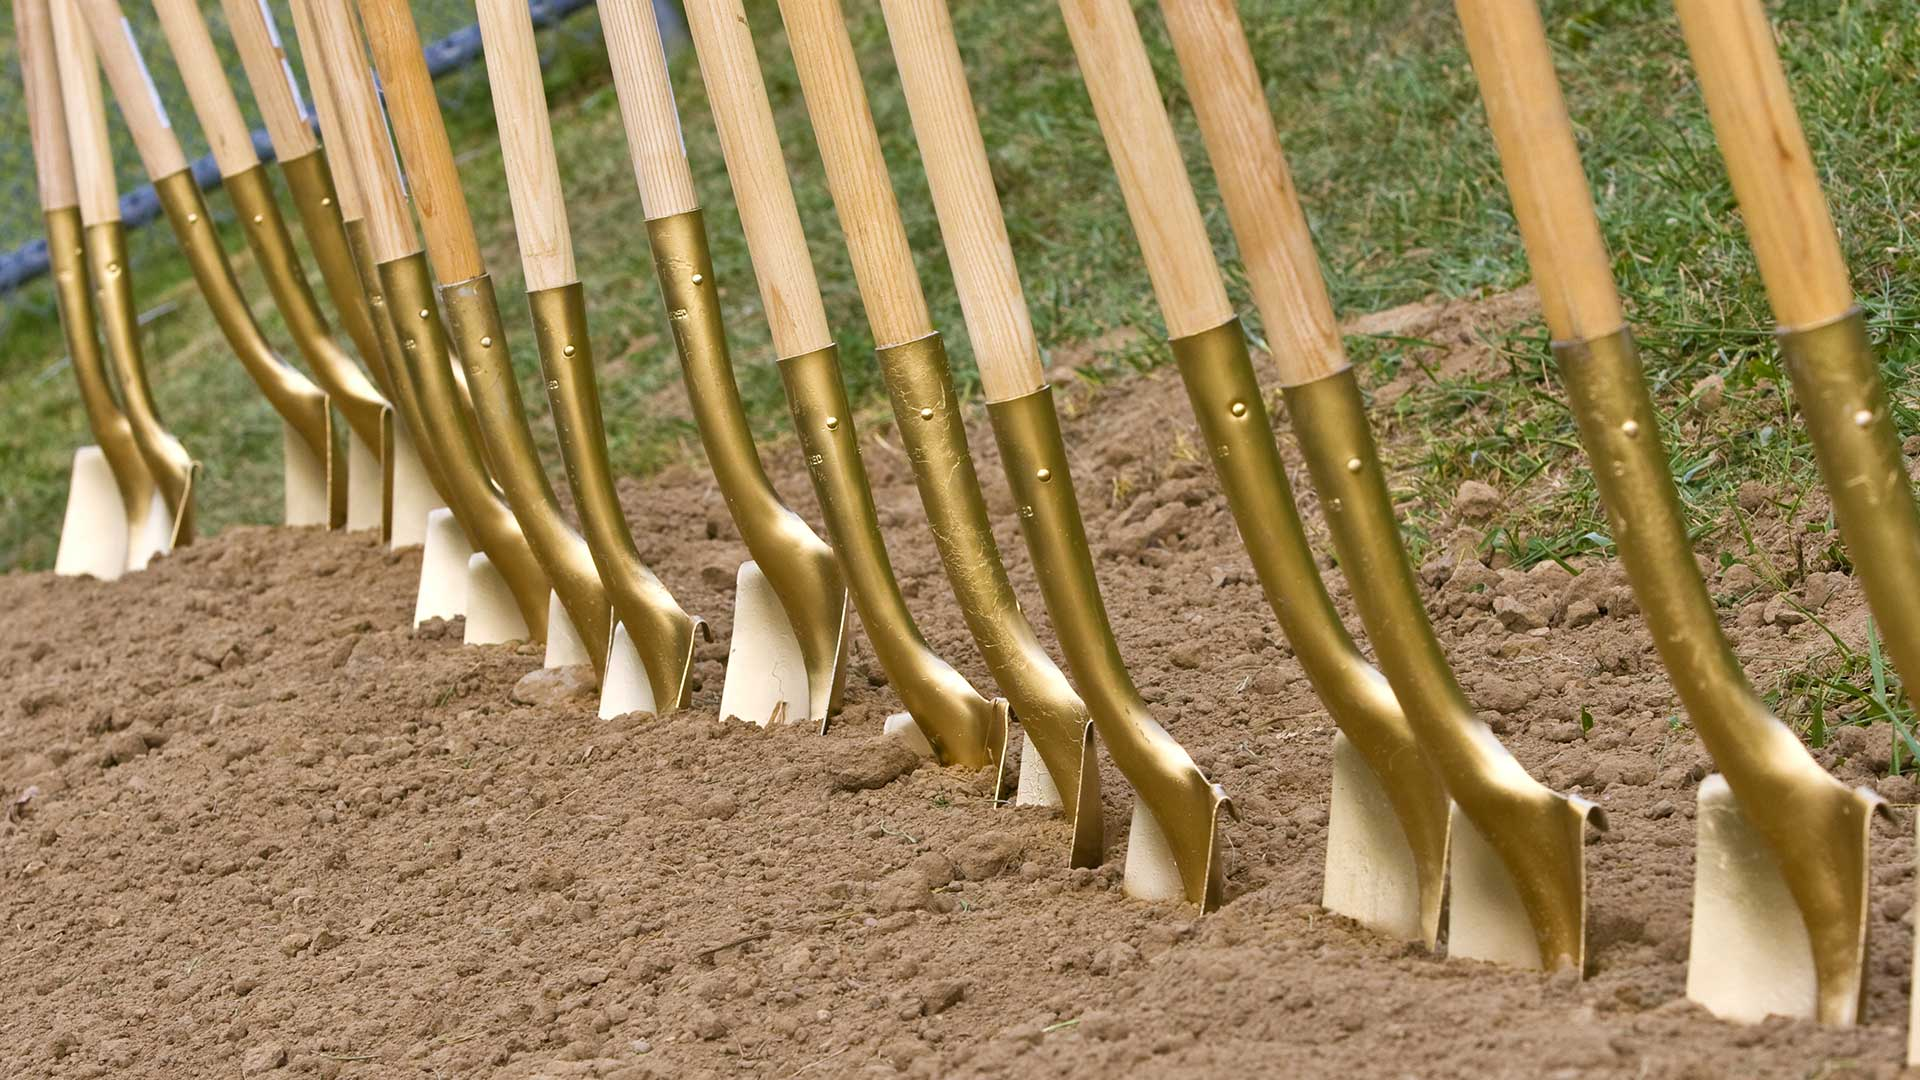 Interim to Hold Groundbreaking Ceremony for New Bridge House May 12th